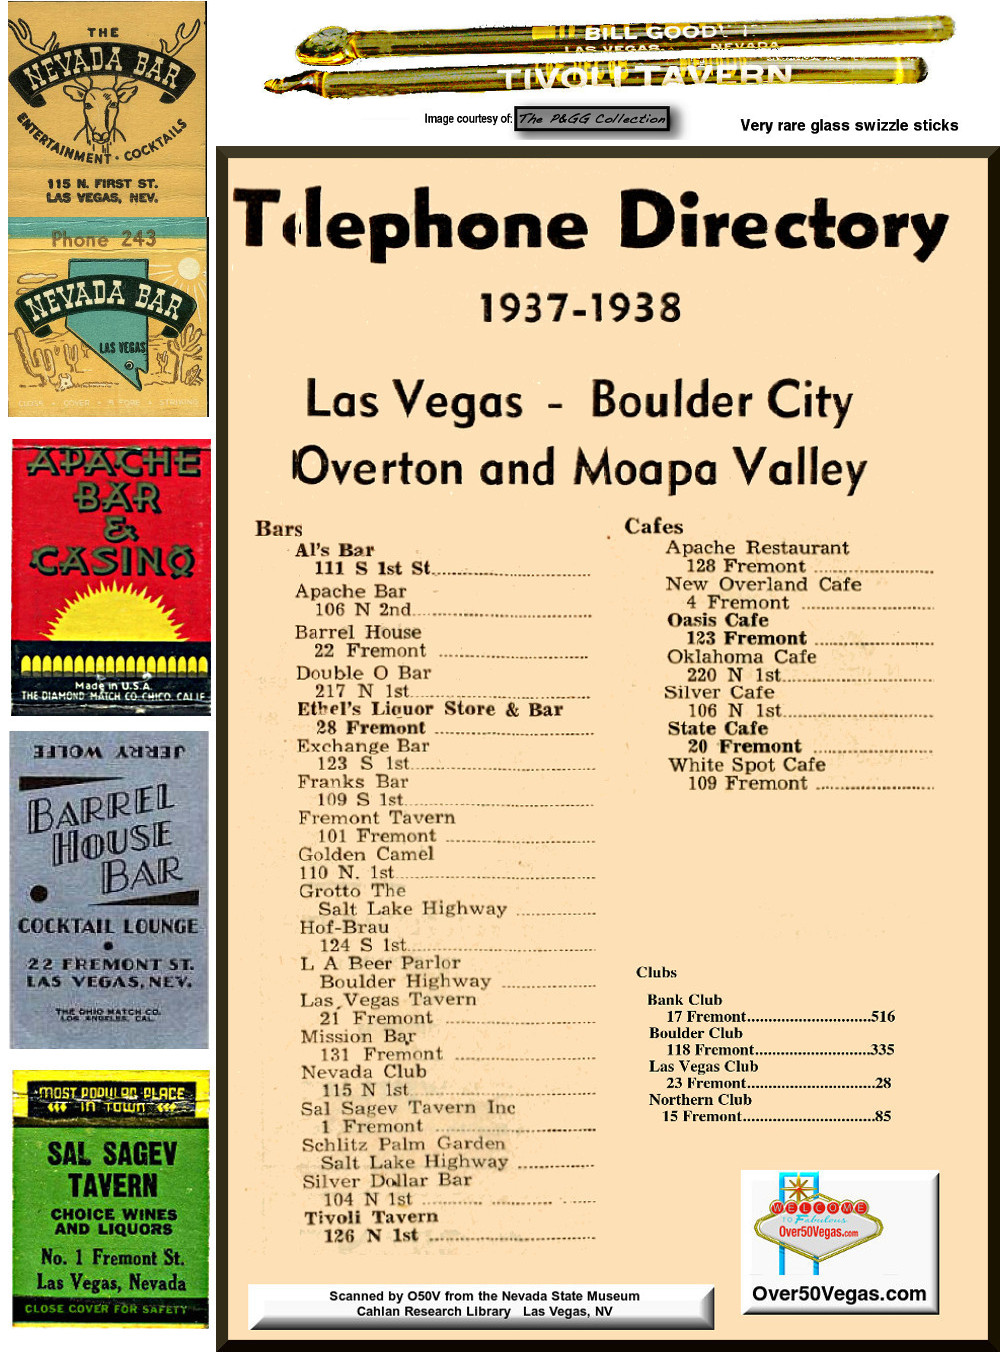 1937-1938 Las Vegas Telephone Directory listings for Clubs